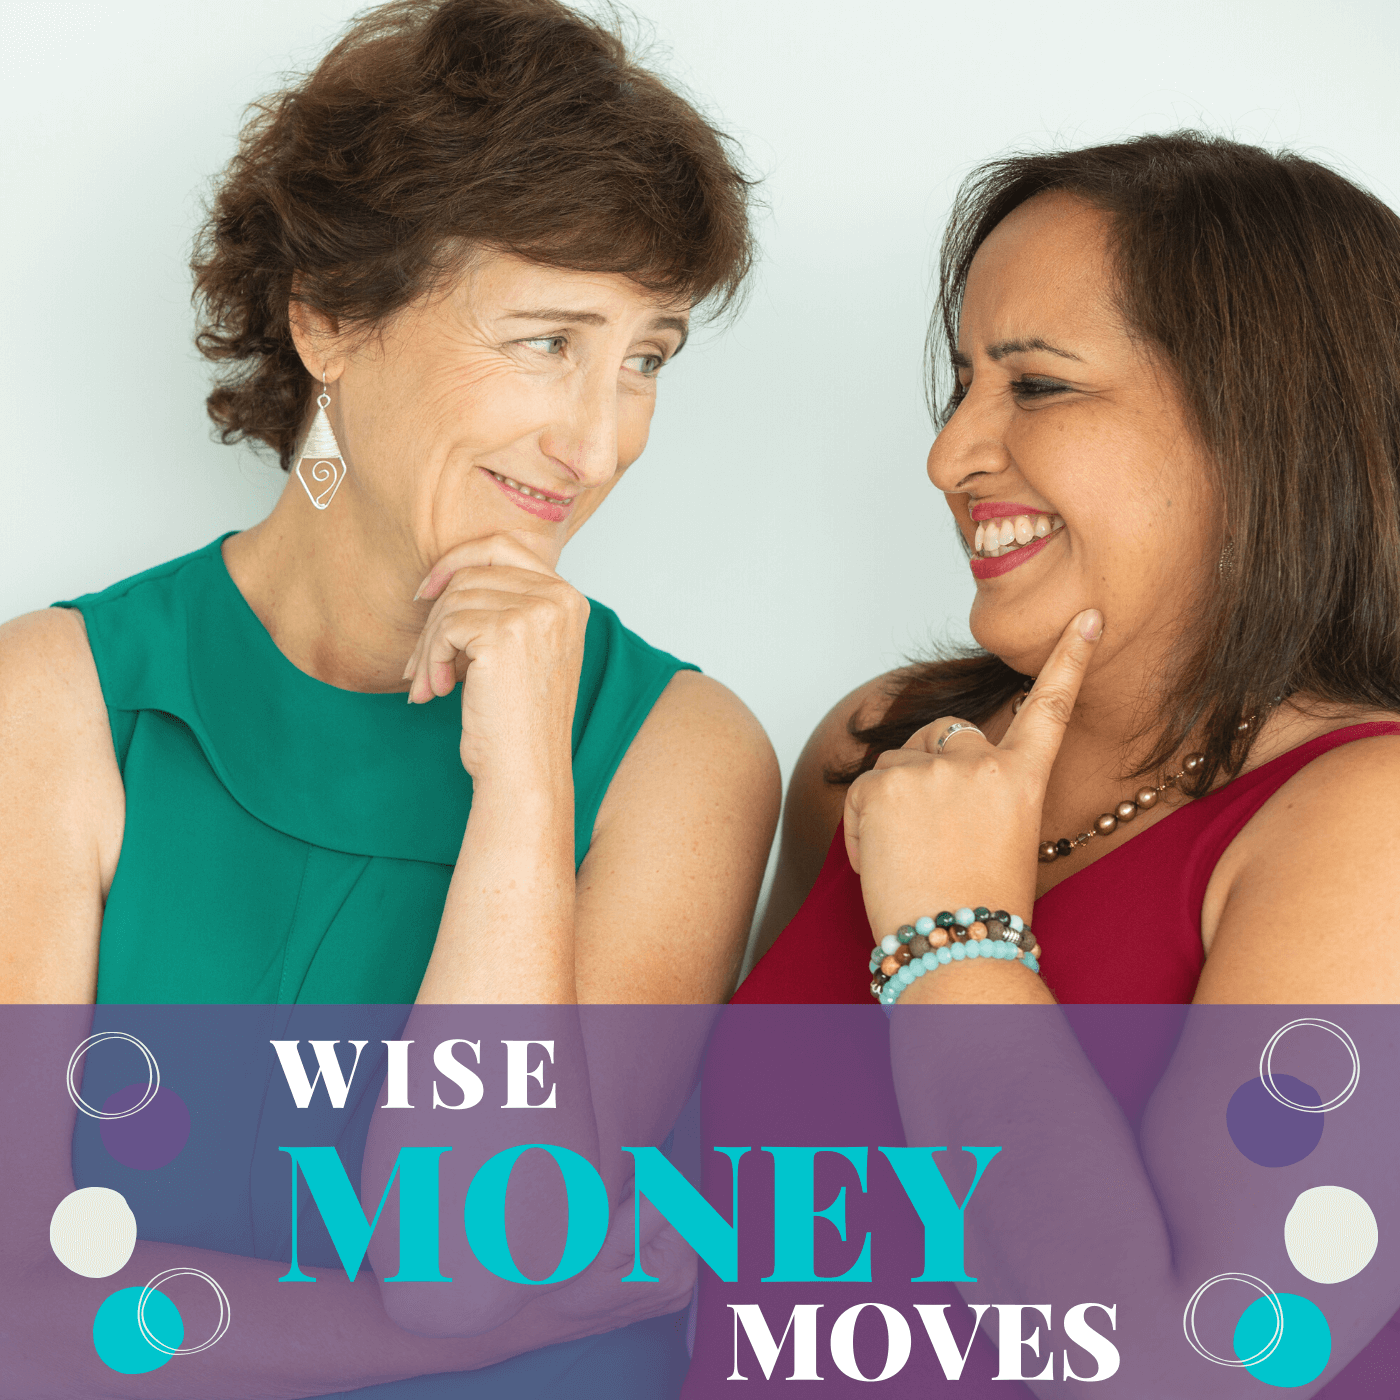 Wise Money Moves show art